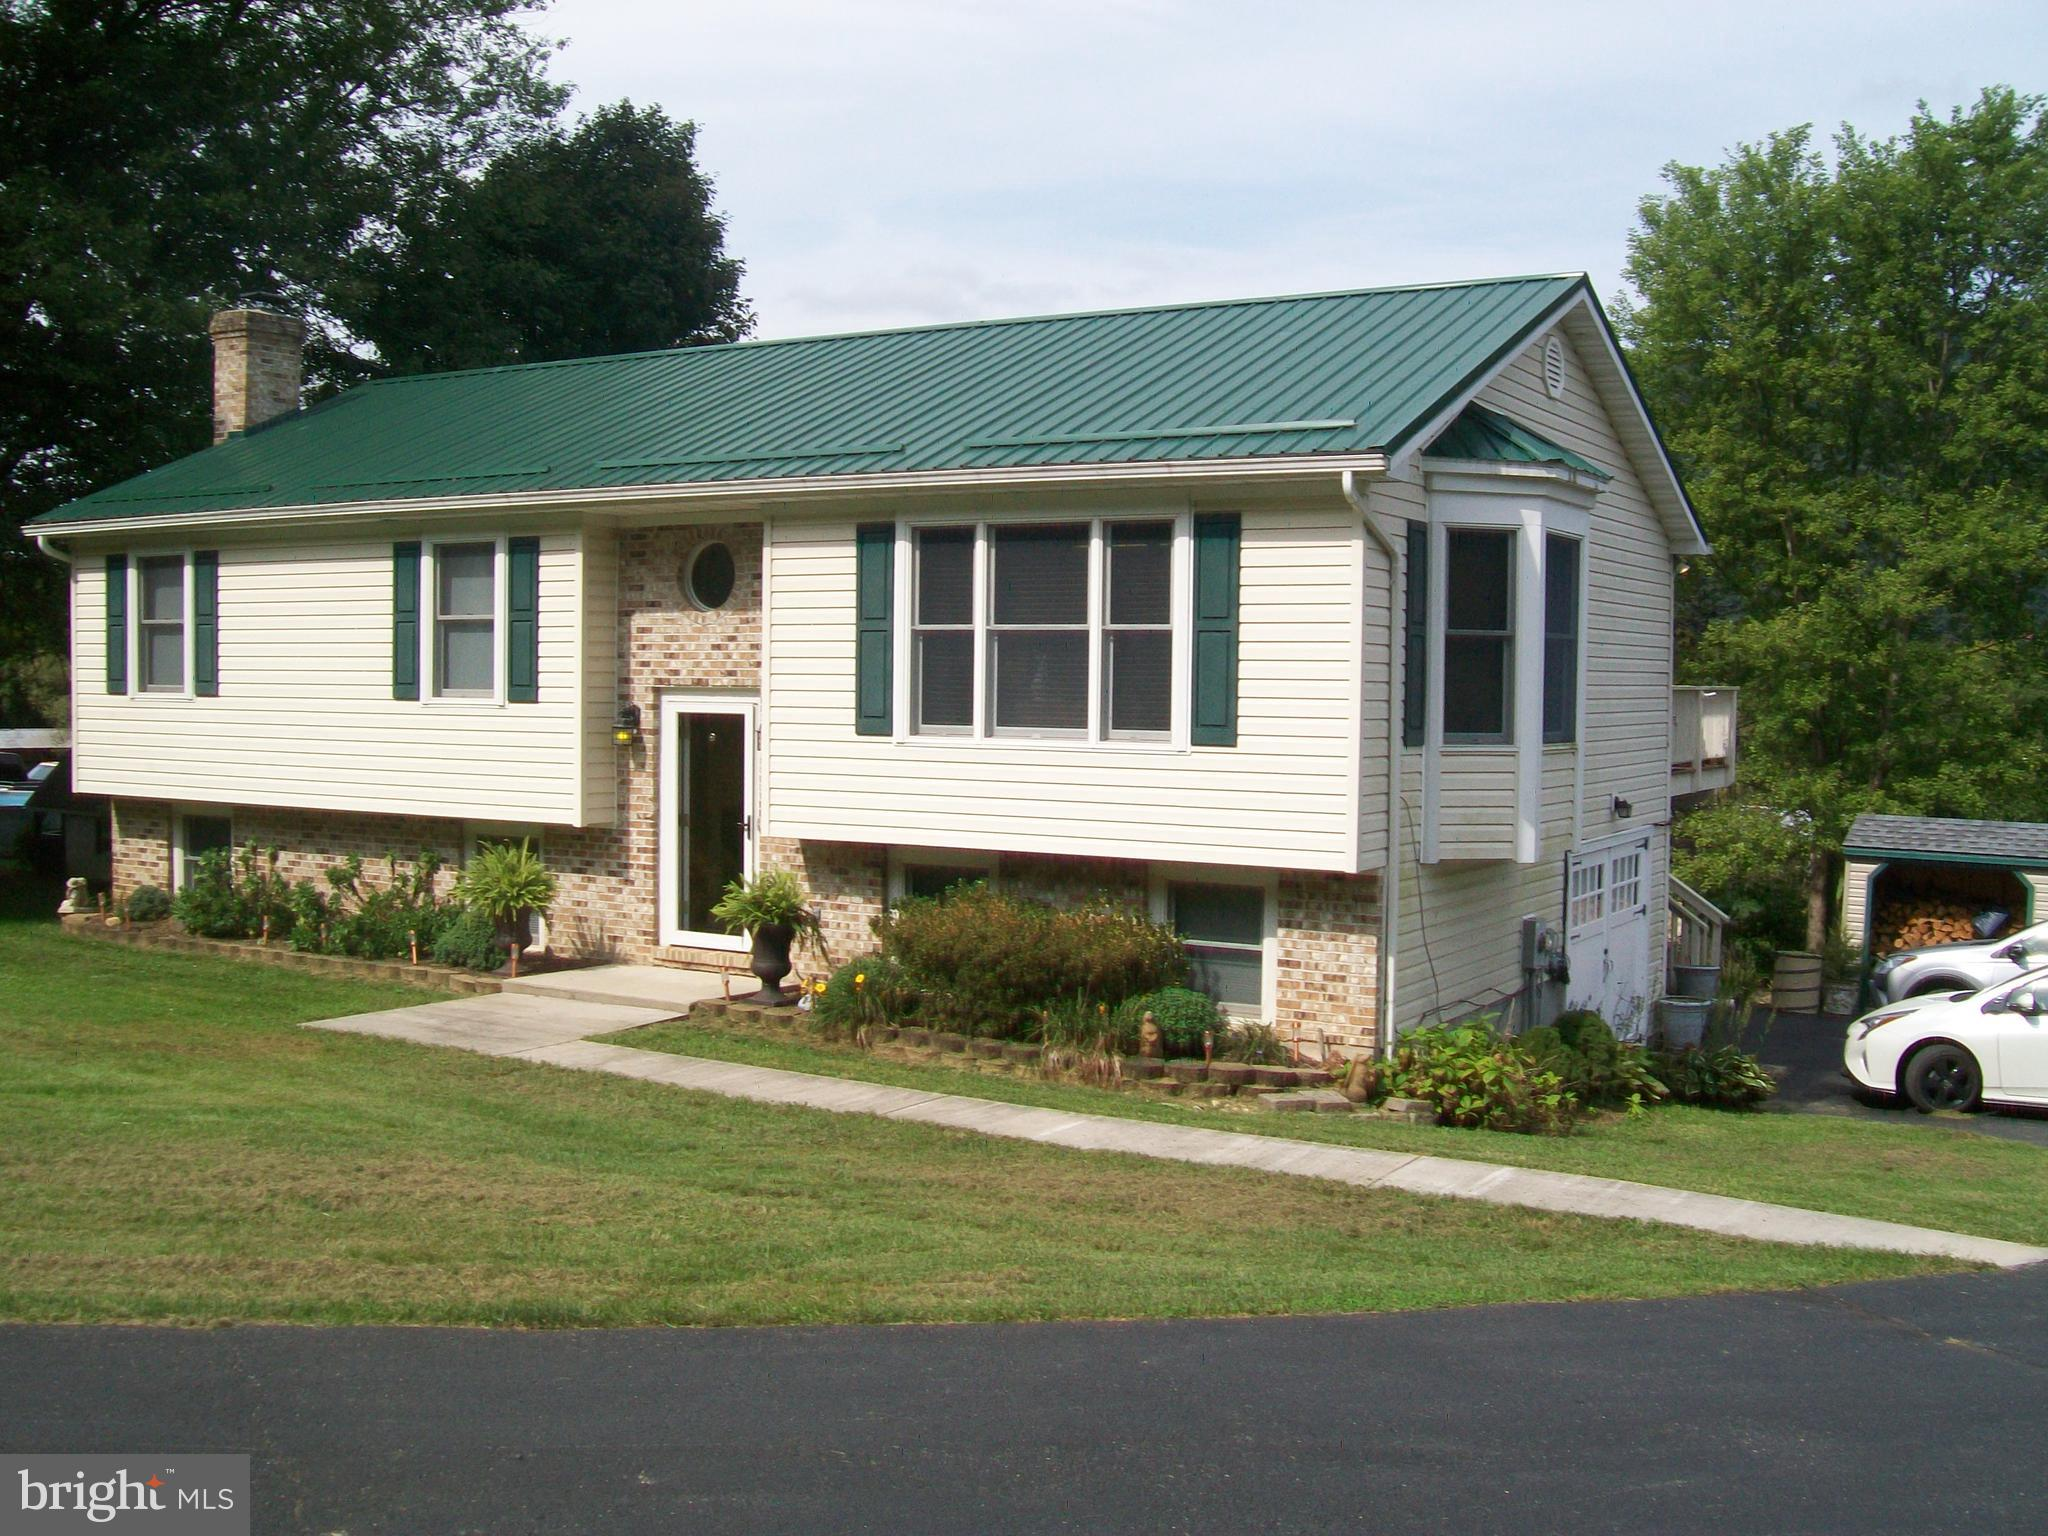 1551 CAMPBELL ROAD, SPRINGFIELD, WV 26763